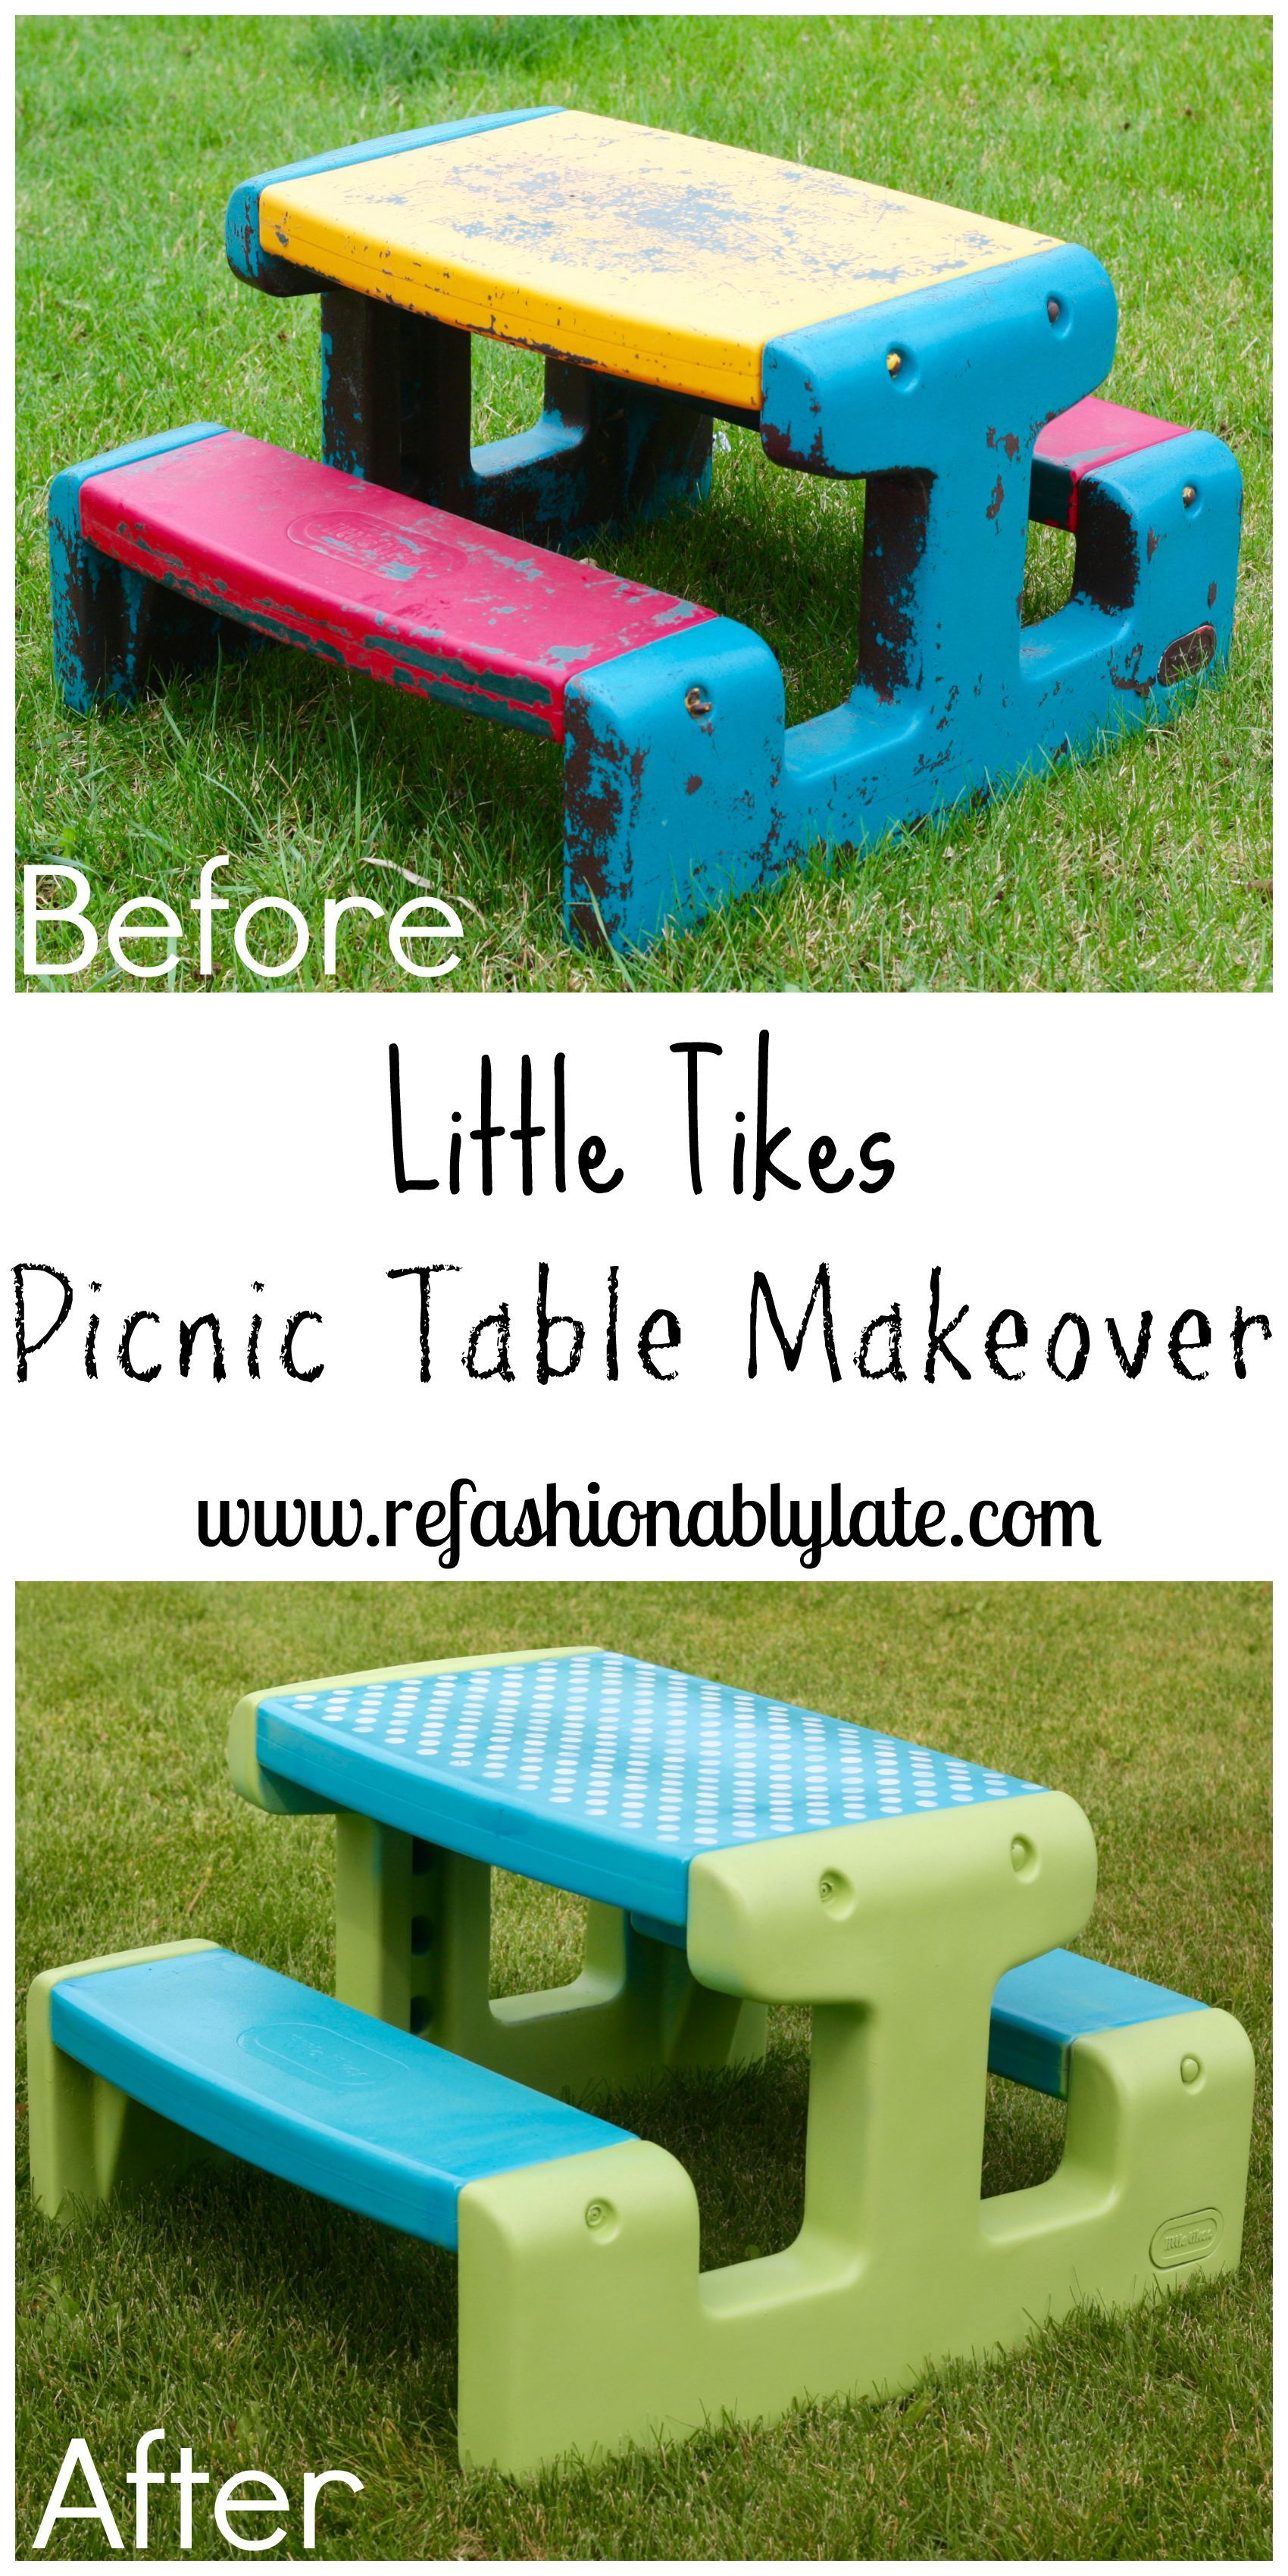 Little Tikes Picnic Table Makeover Bloggers Best DIY Ideas - Plastic bench that turns into a picnic table